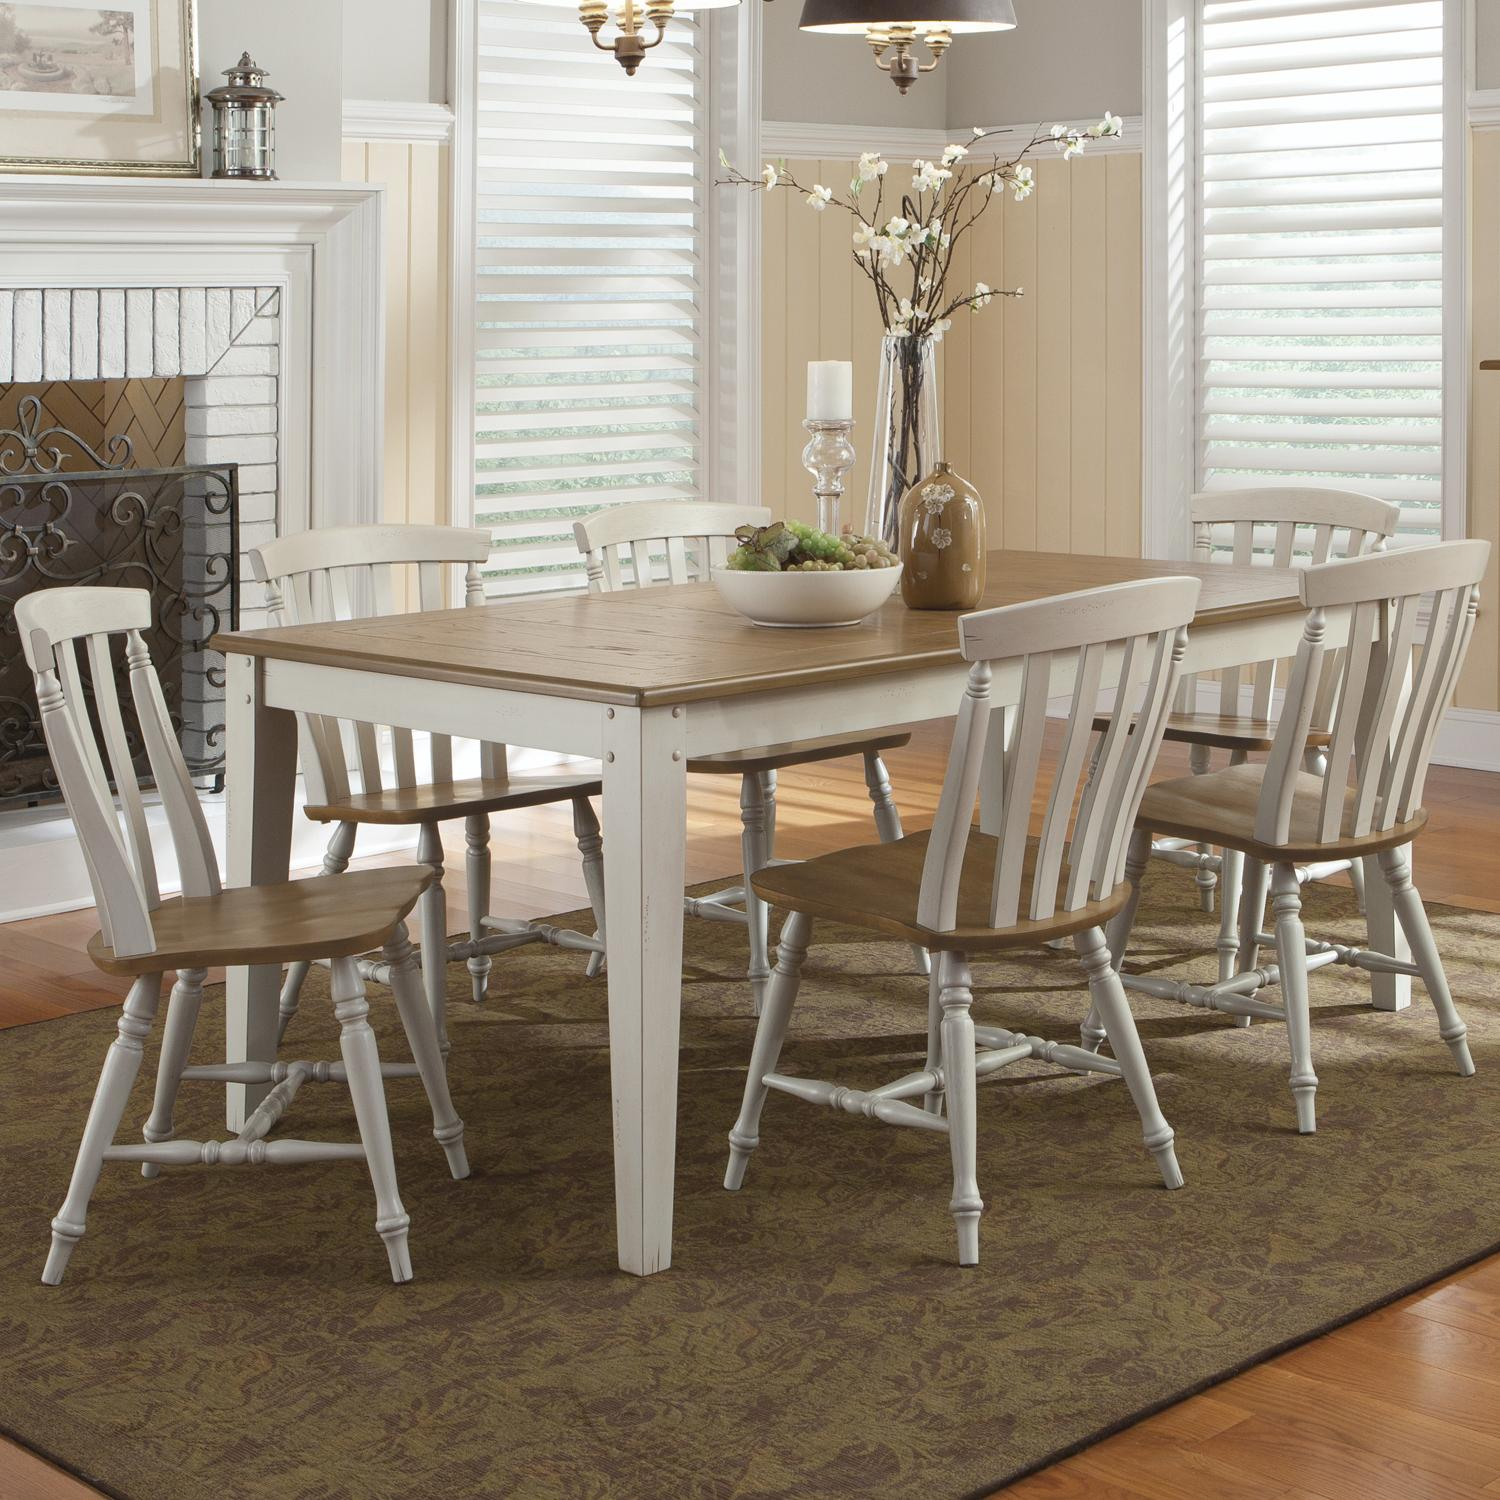 Liberty Furniture Al Fresco III 7 Piece Rectangular Table and Chairs Set - Item Number: 841-CD-SET32